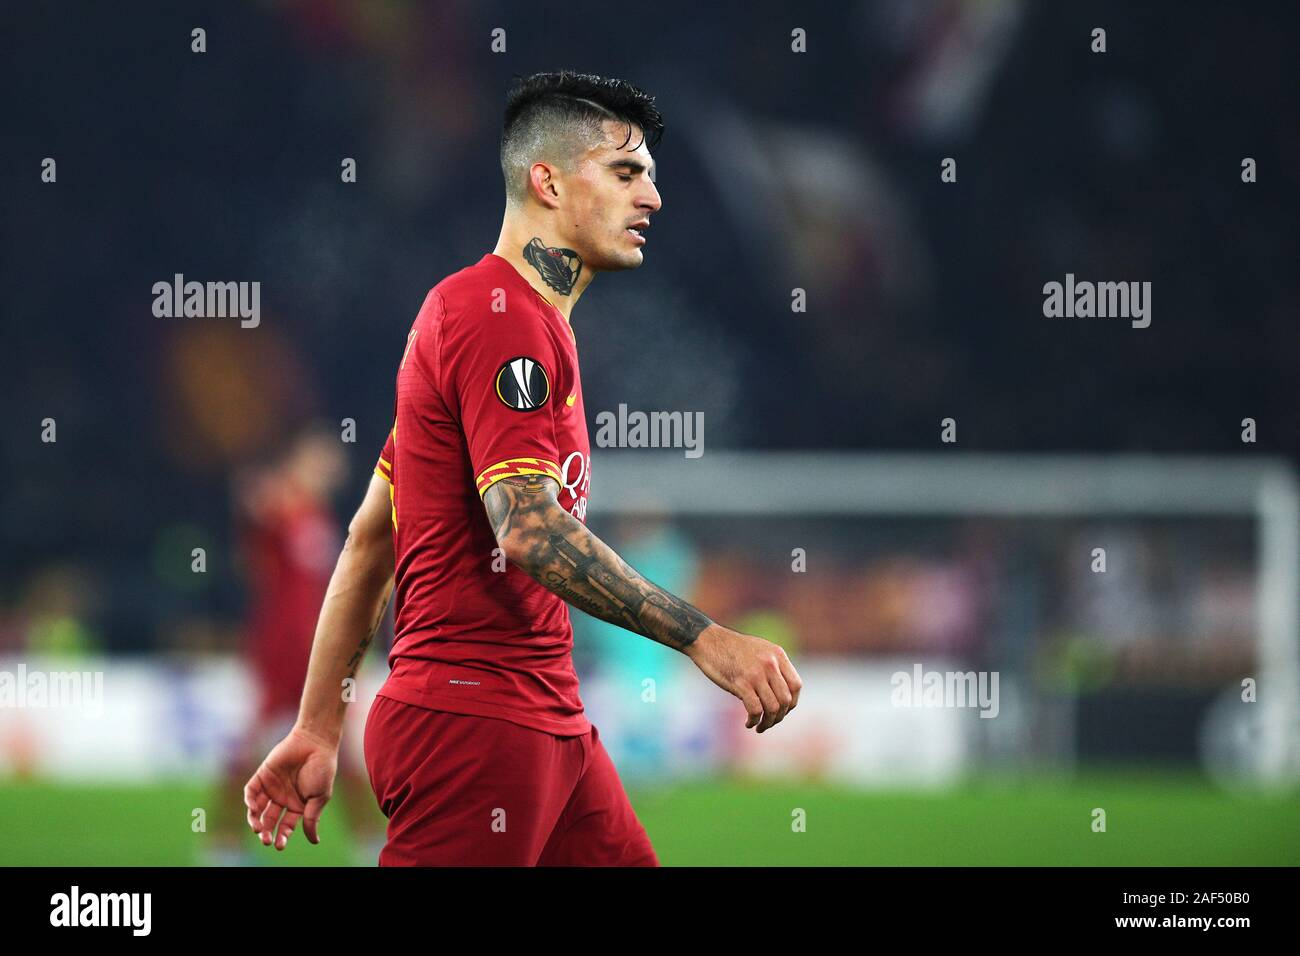 Diego Perotti of Roma reacts during the UEFA Europa League, Group J football match between AS Roma and Wolfsberg AC on December 12, 2019 at Stadio Olimpico in Rome, Italy - Photo Federico Proietti/ESPA-Images Stock Photo